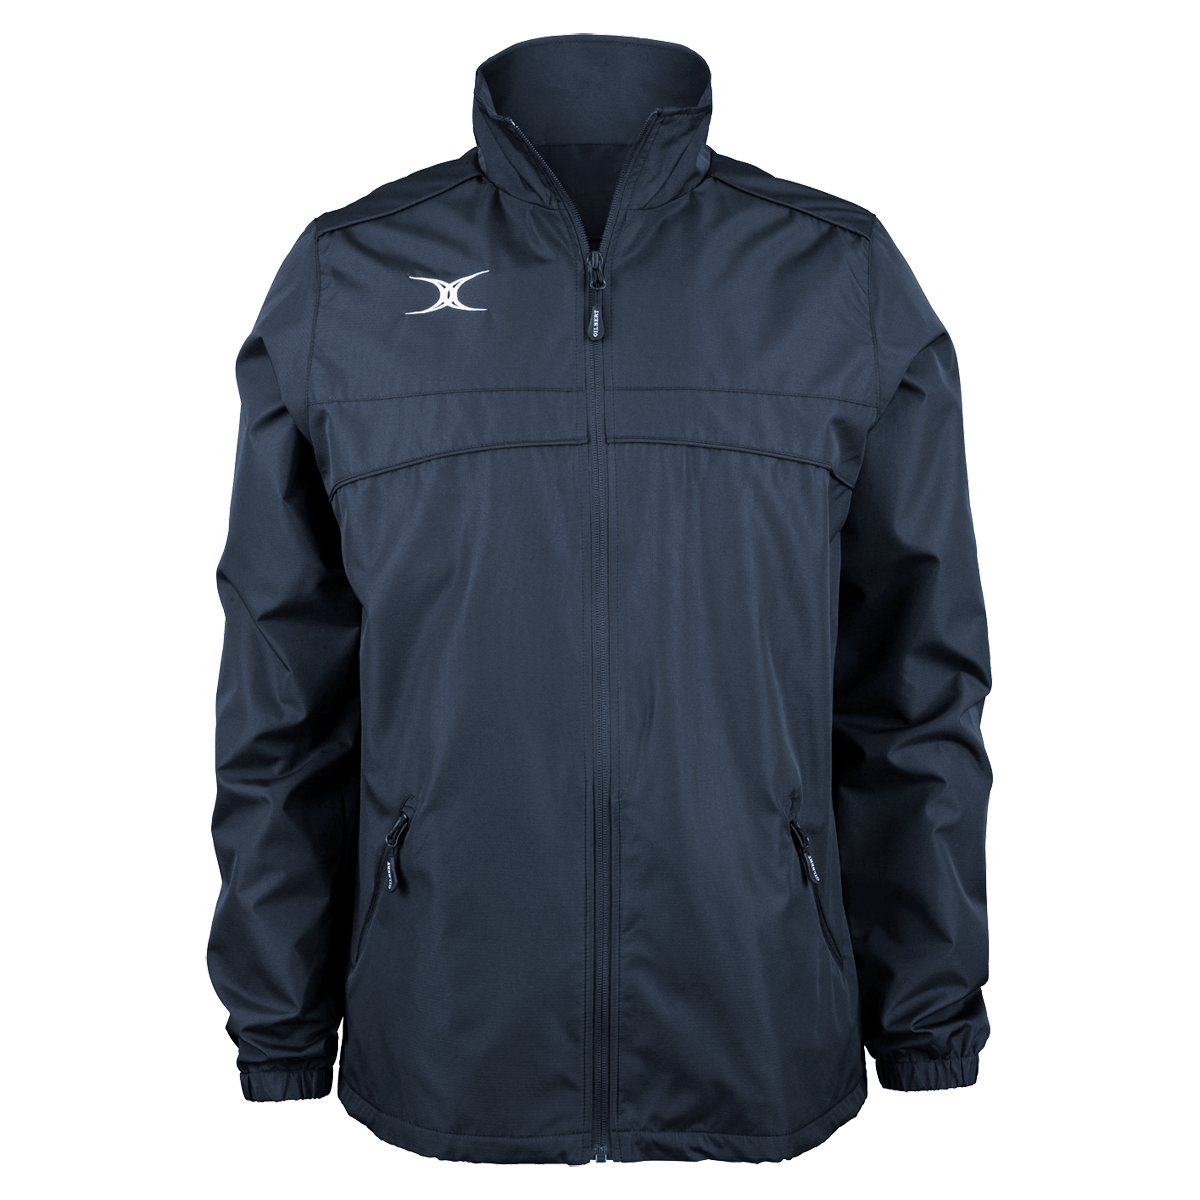 Gilbert Navy Photon Full Zip Jacket